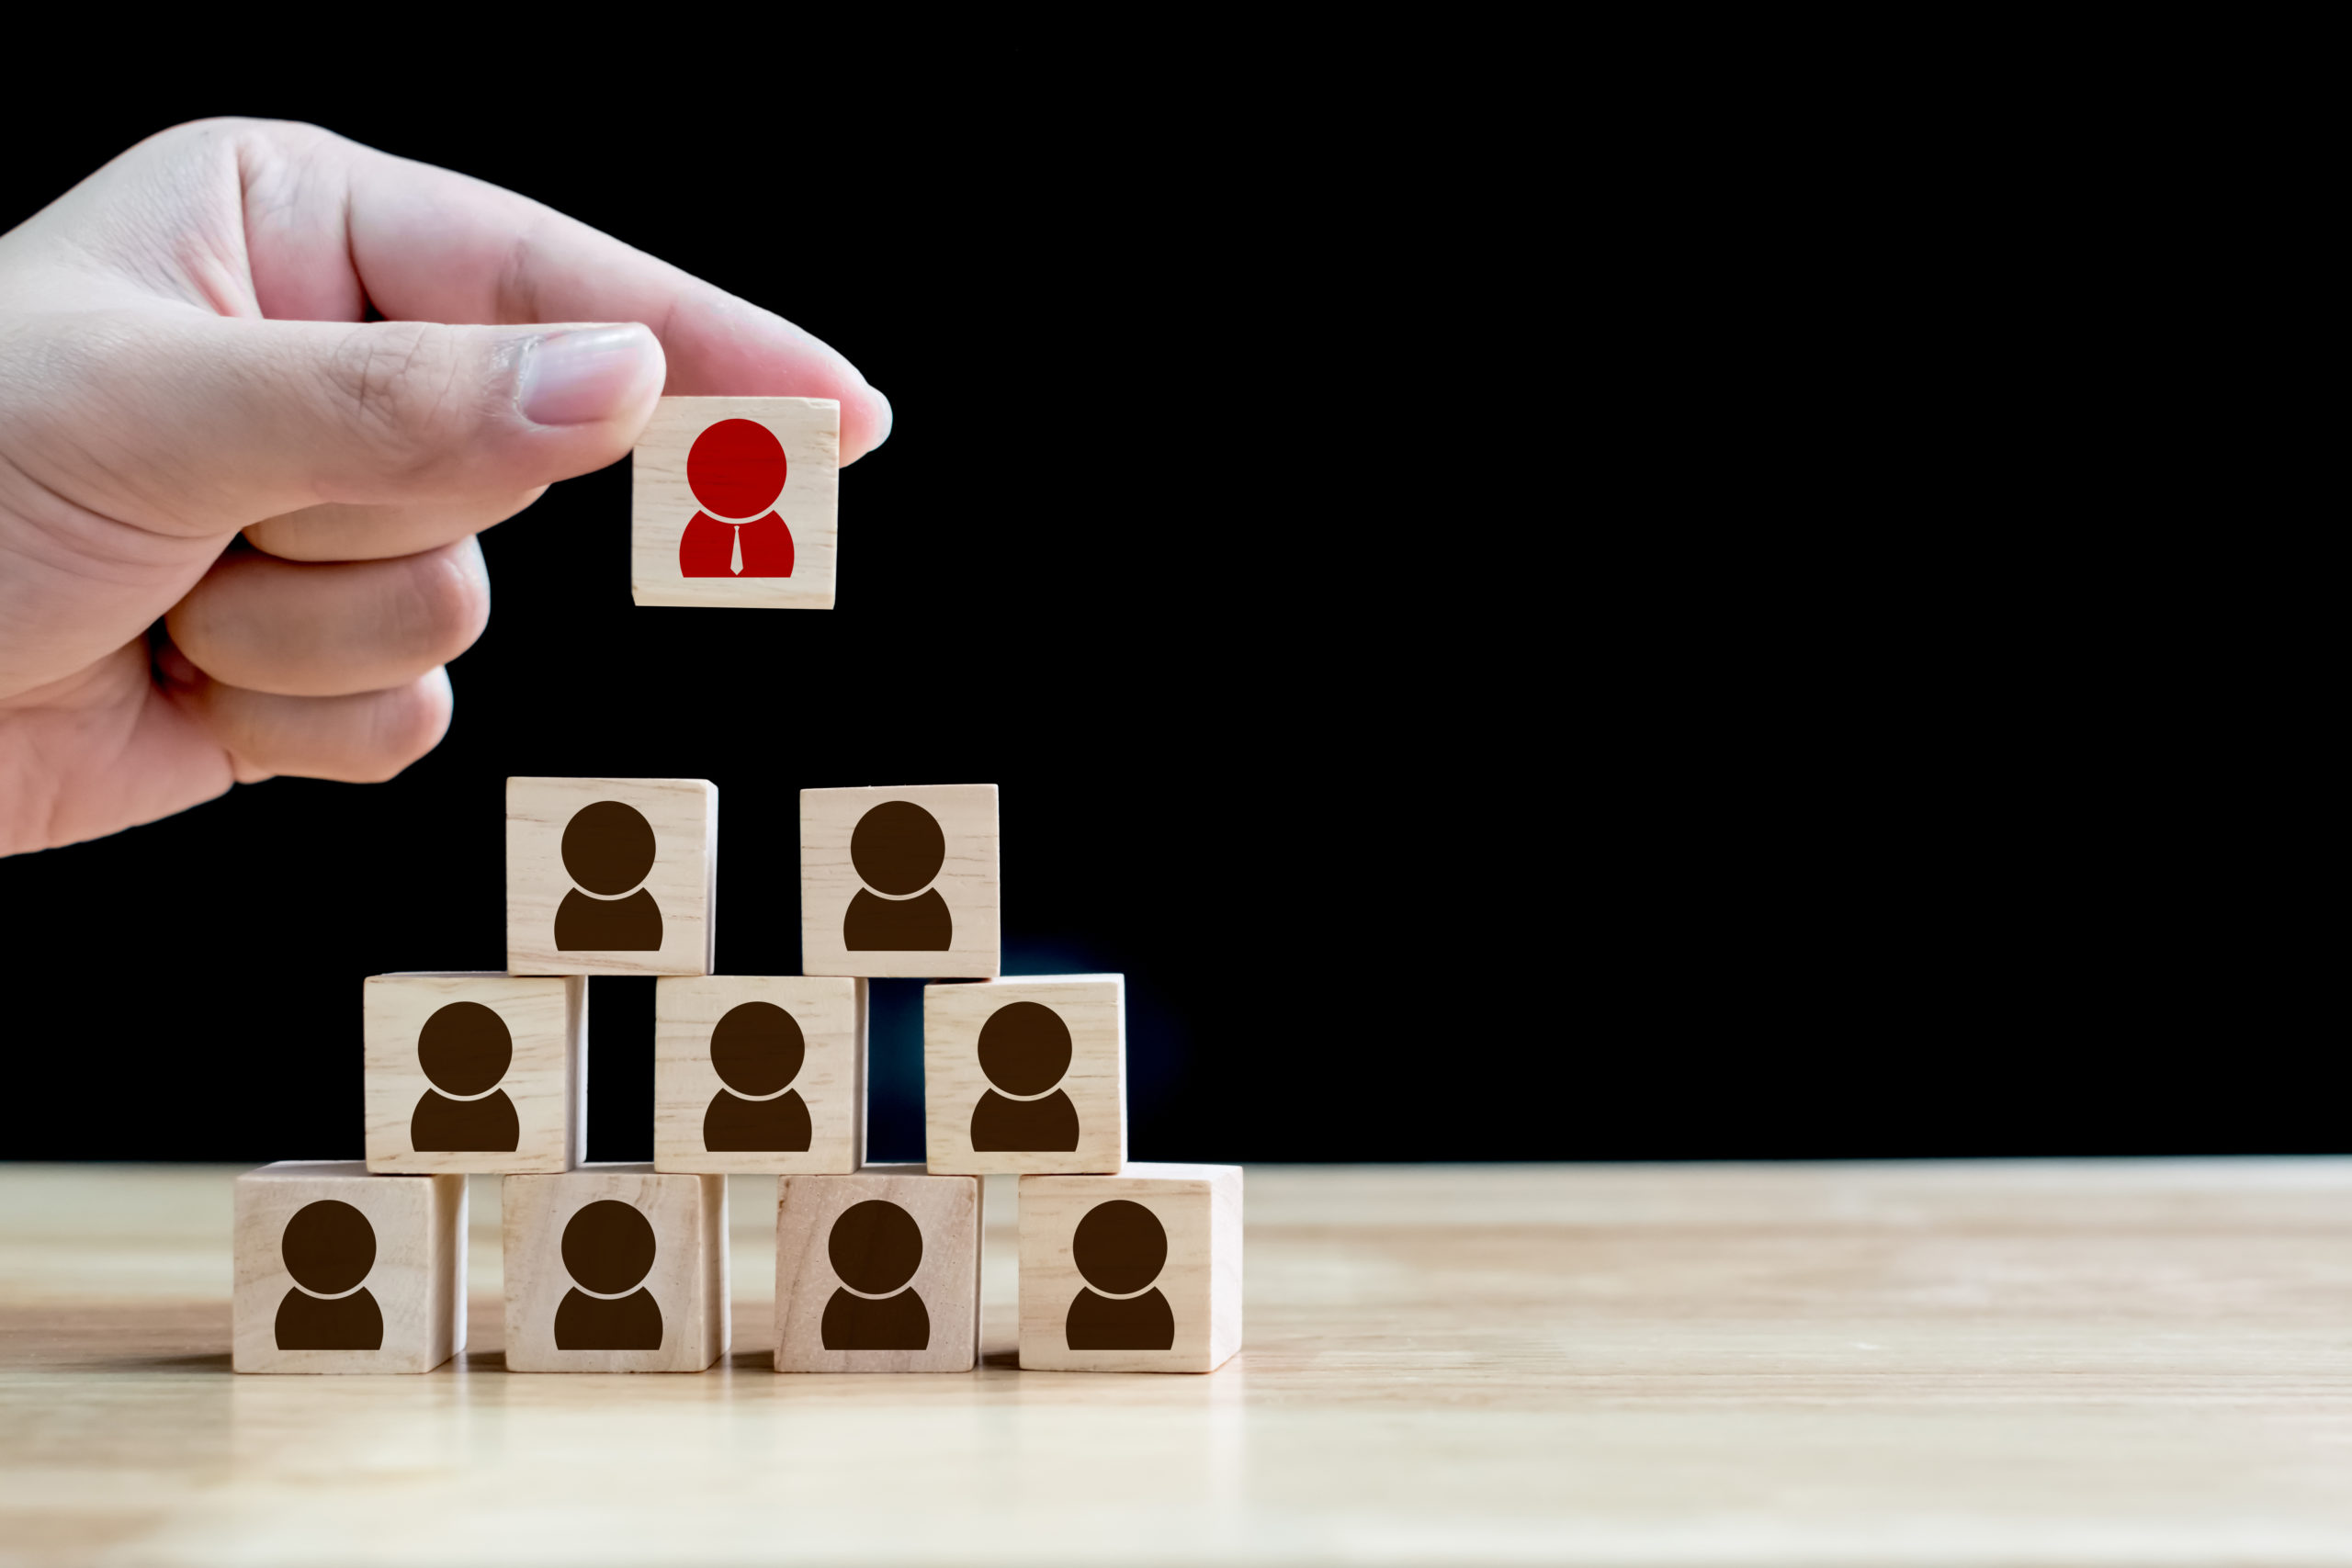 A tower of small wooden blocks with silhouettes of employees.